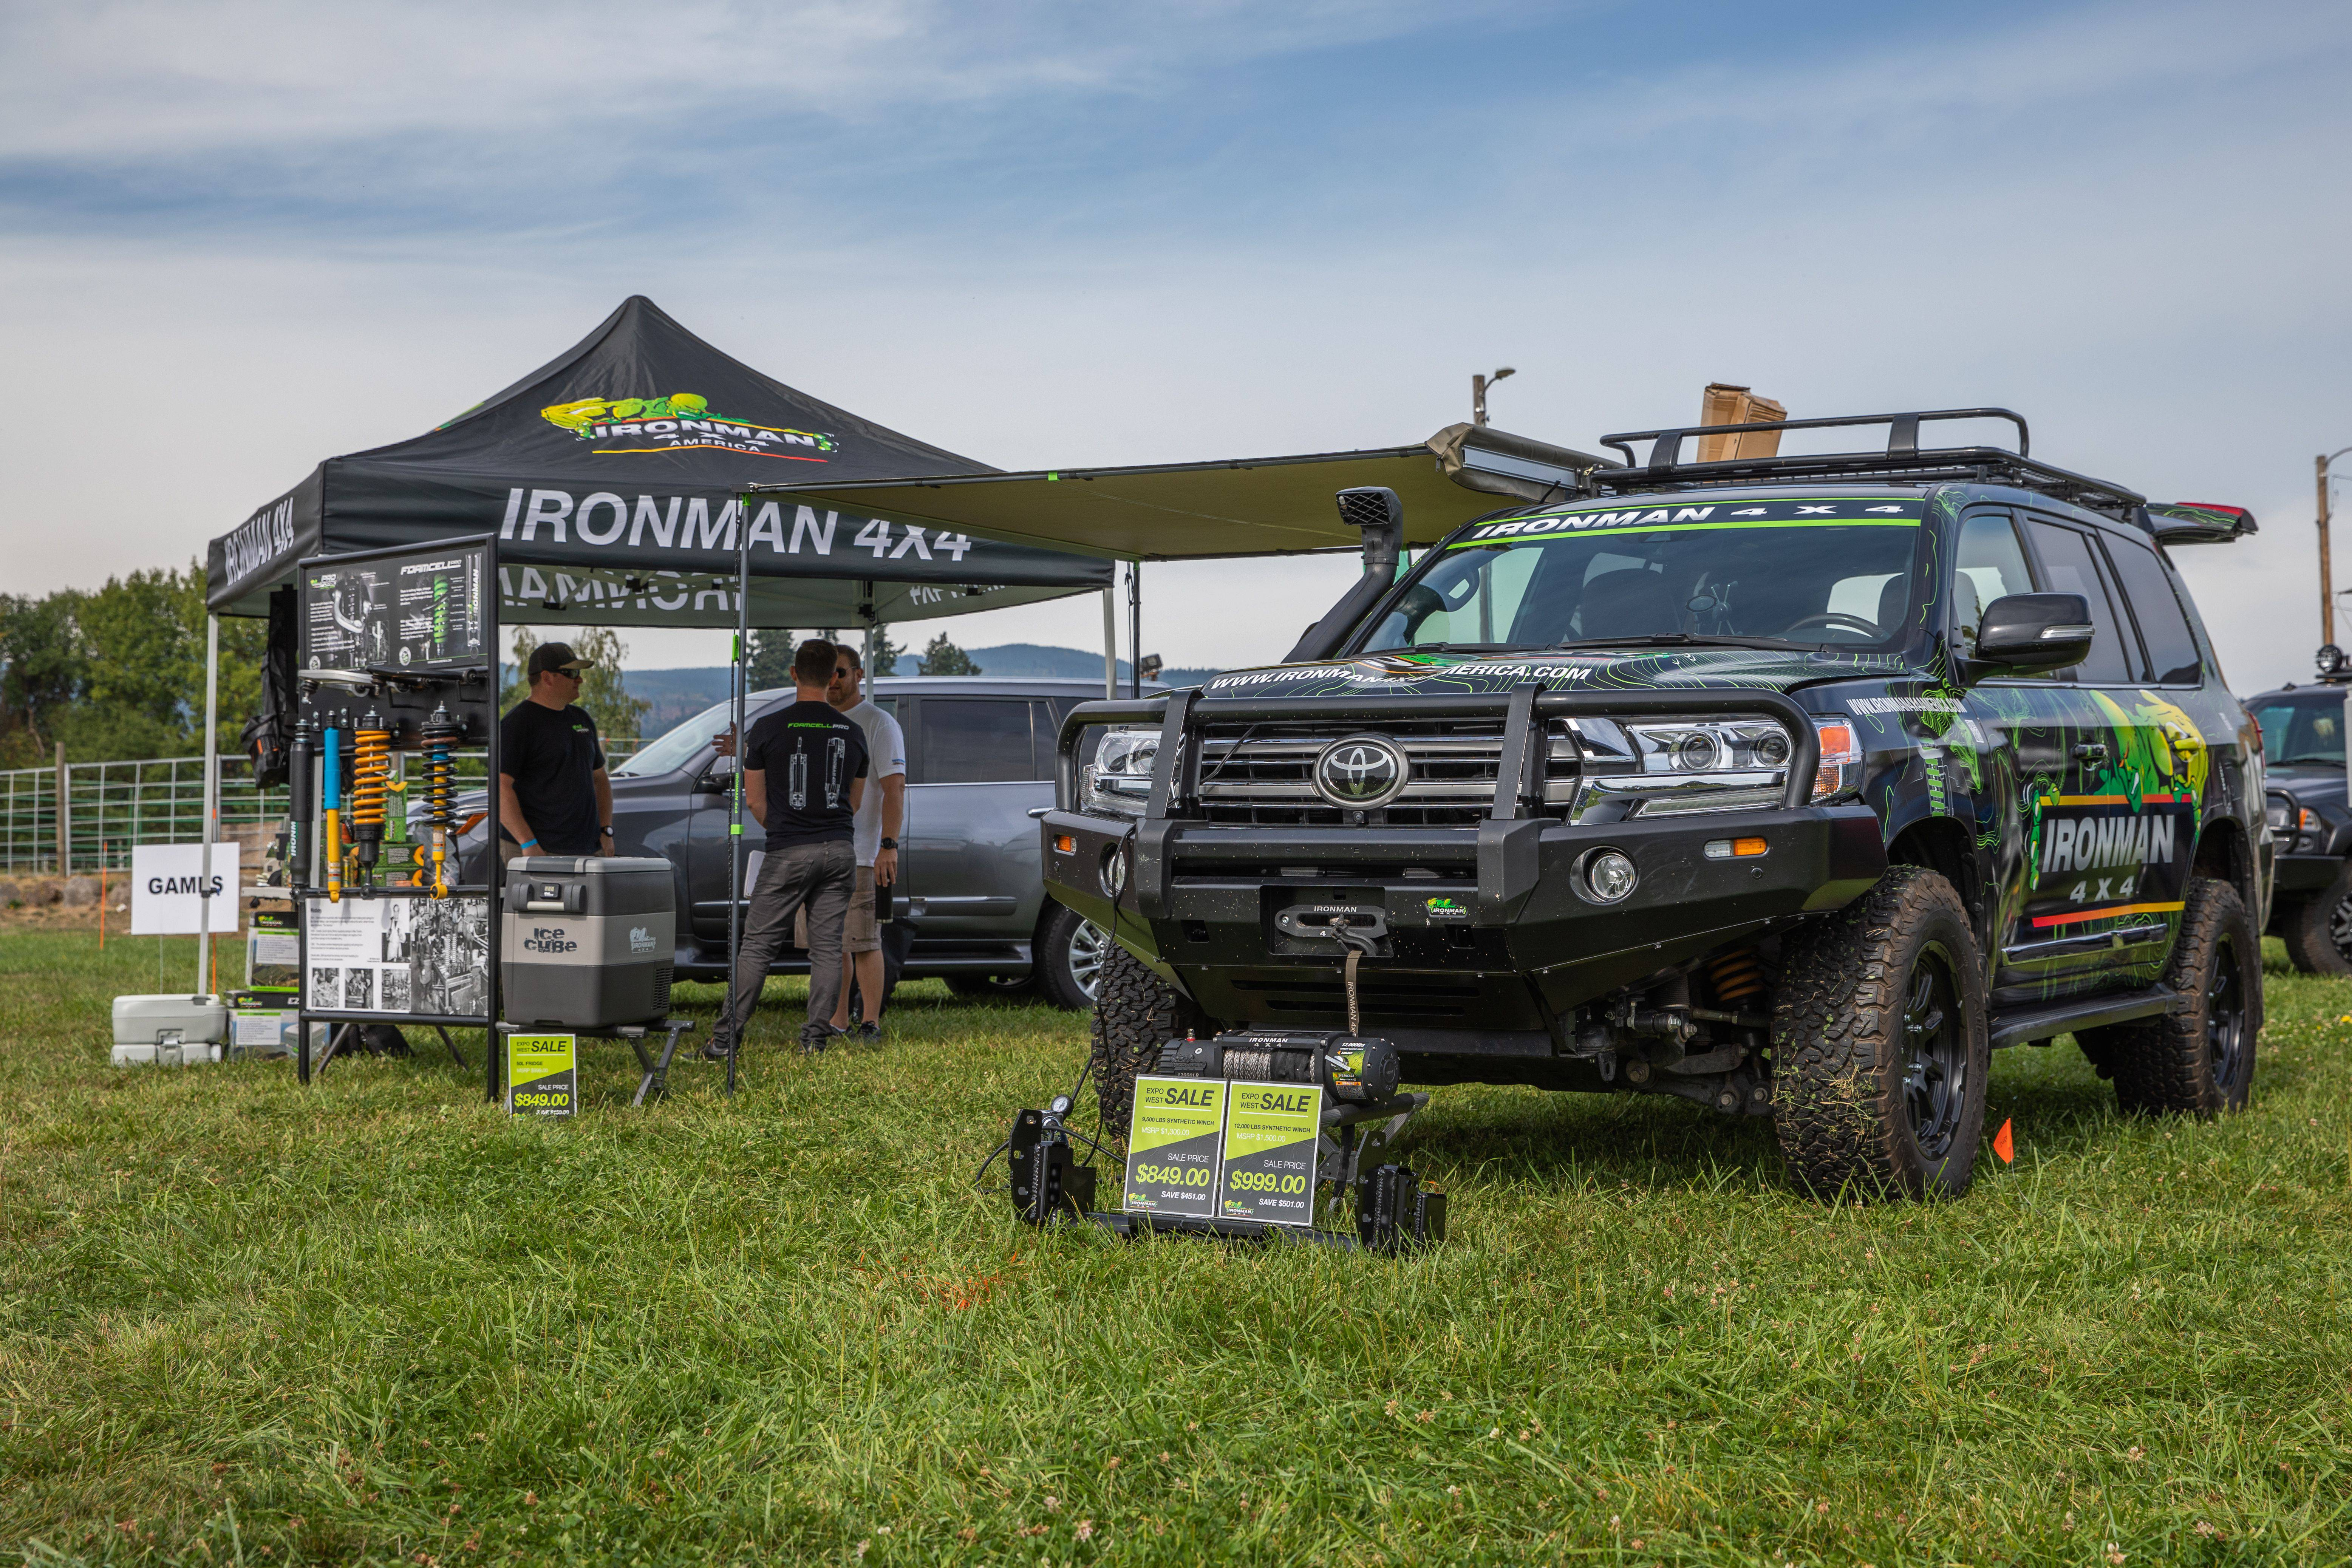 Toyo Tires Trailpass: Ironman 4x4 booth with gear displayed